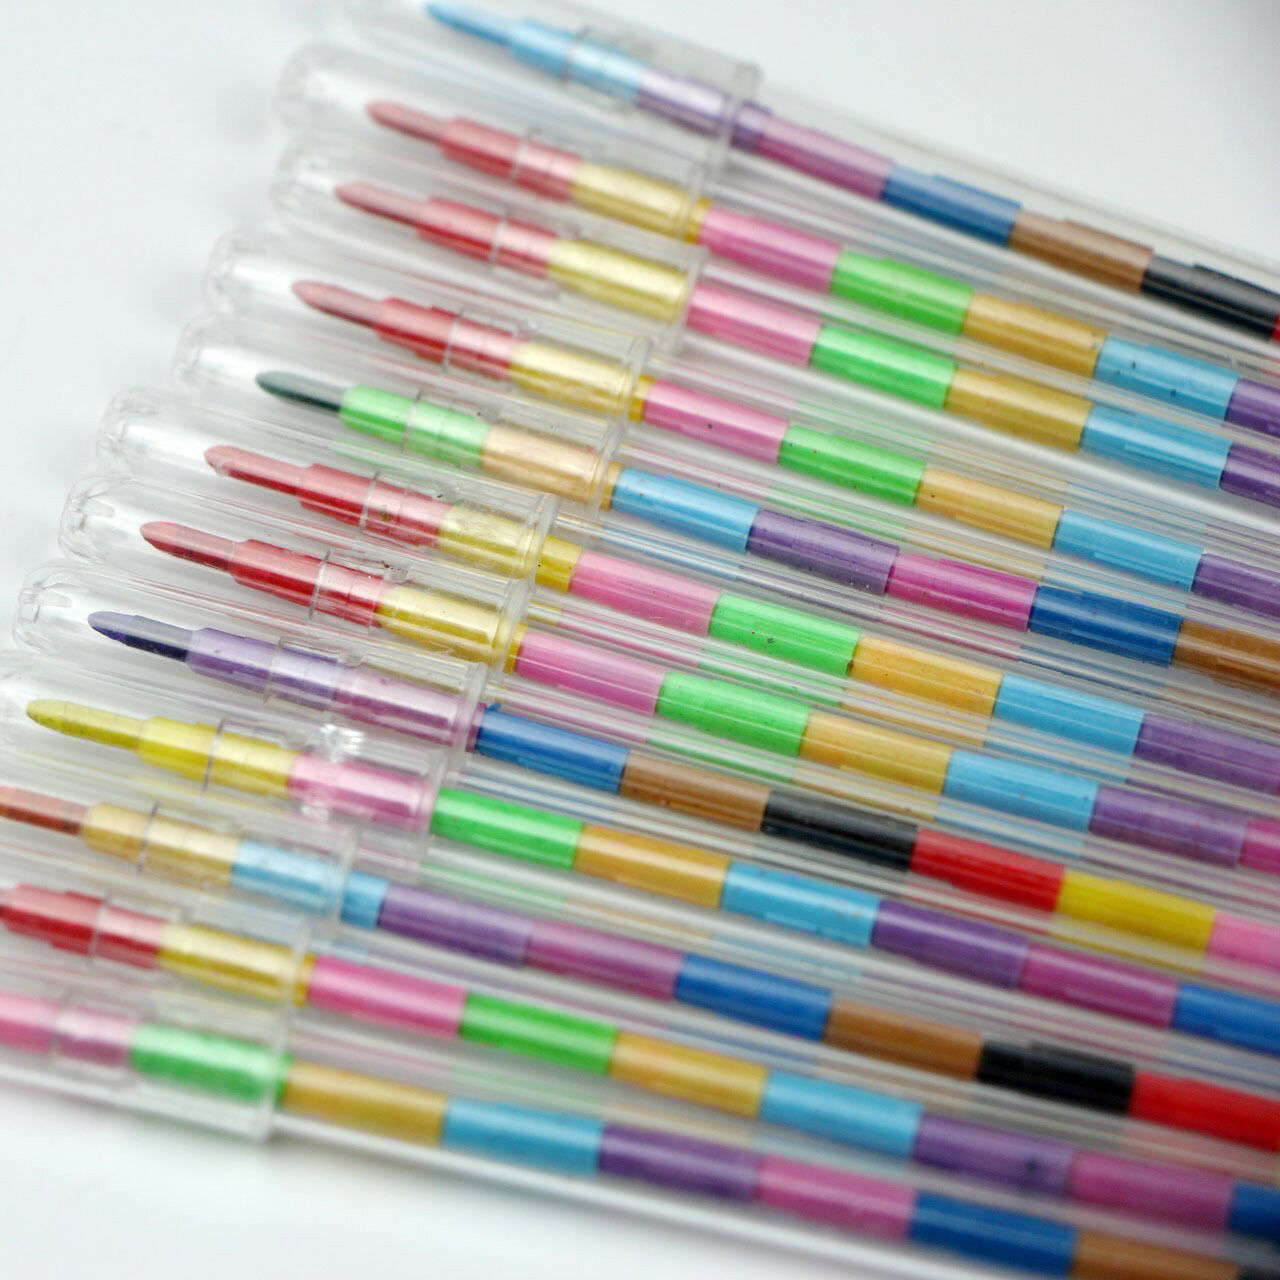 12x Swap Point Stacker Crayon Colouring Pencils Birthday Party Toy Bag Fillers